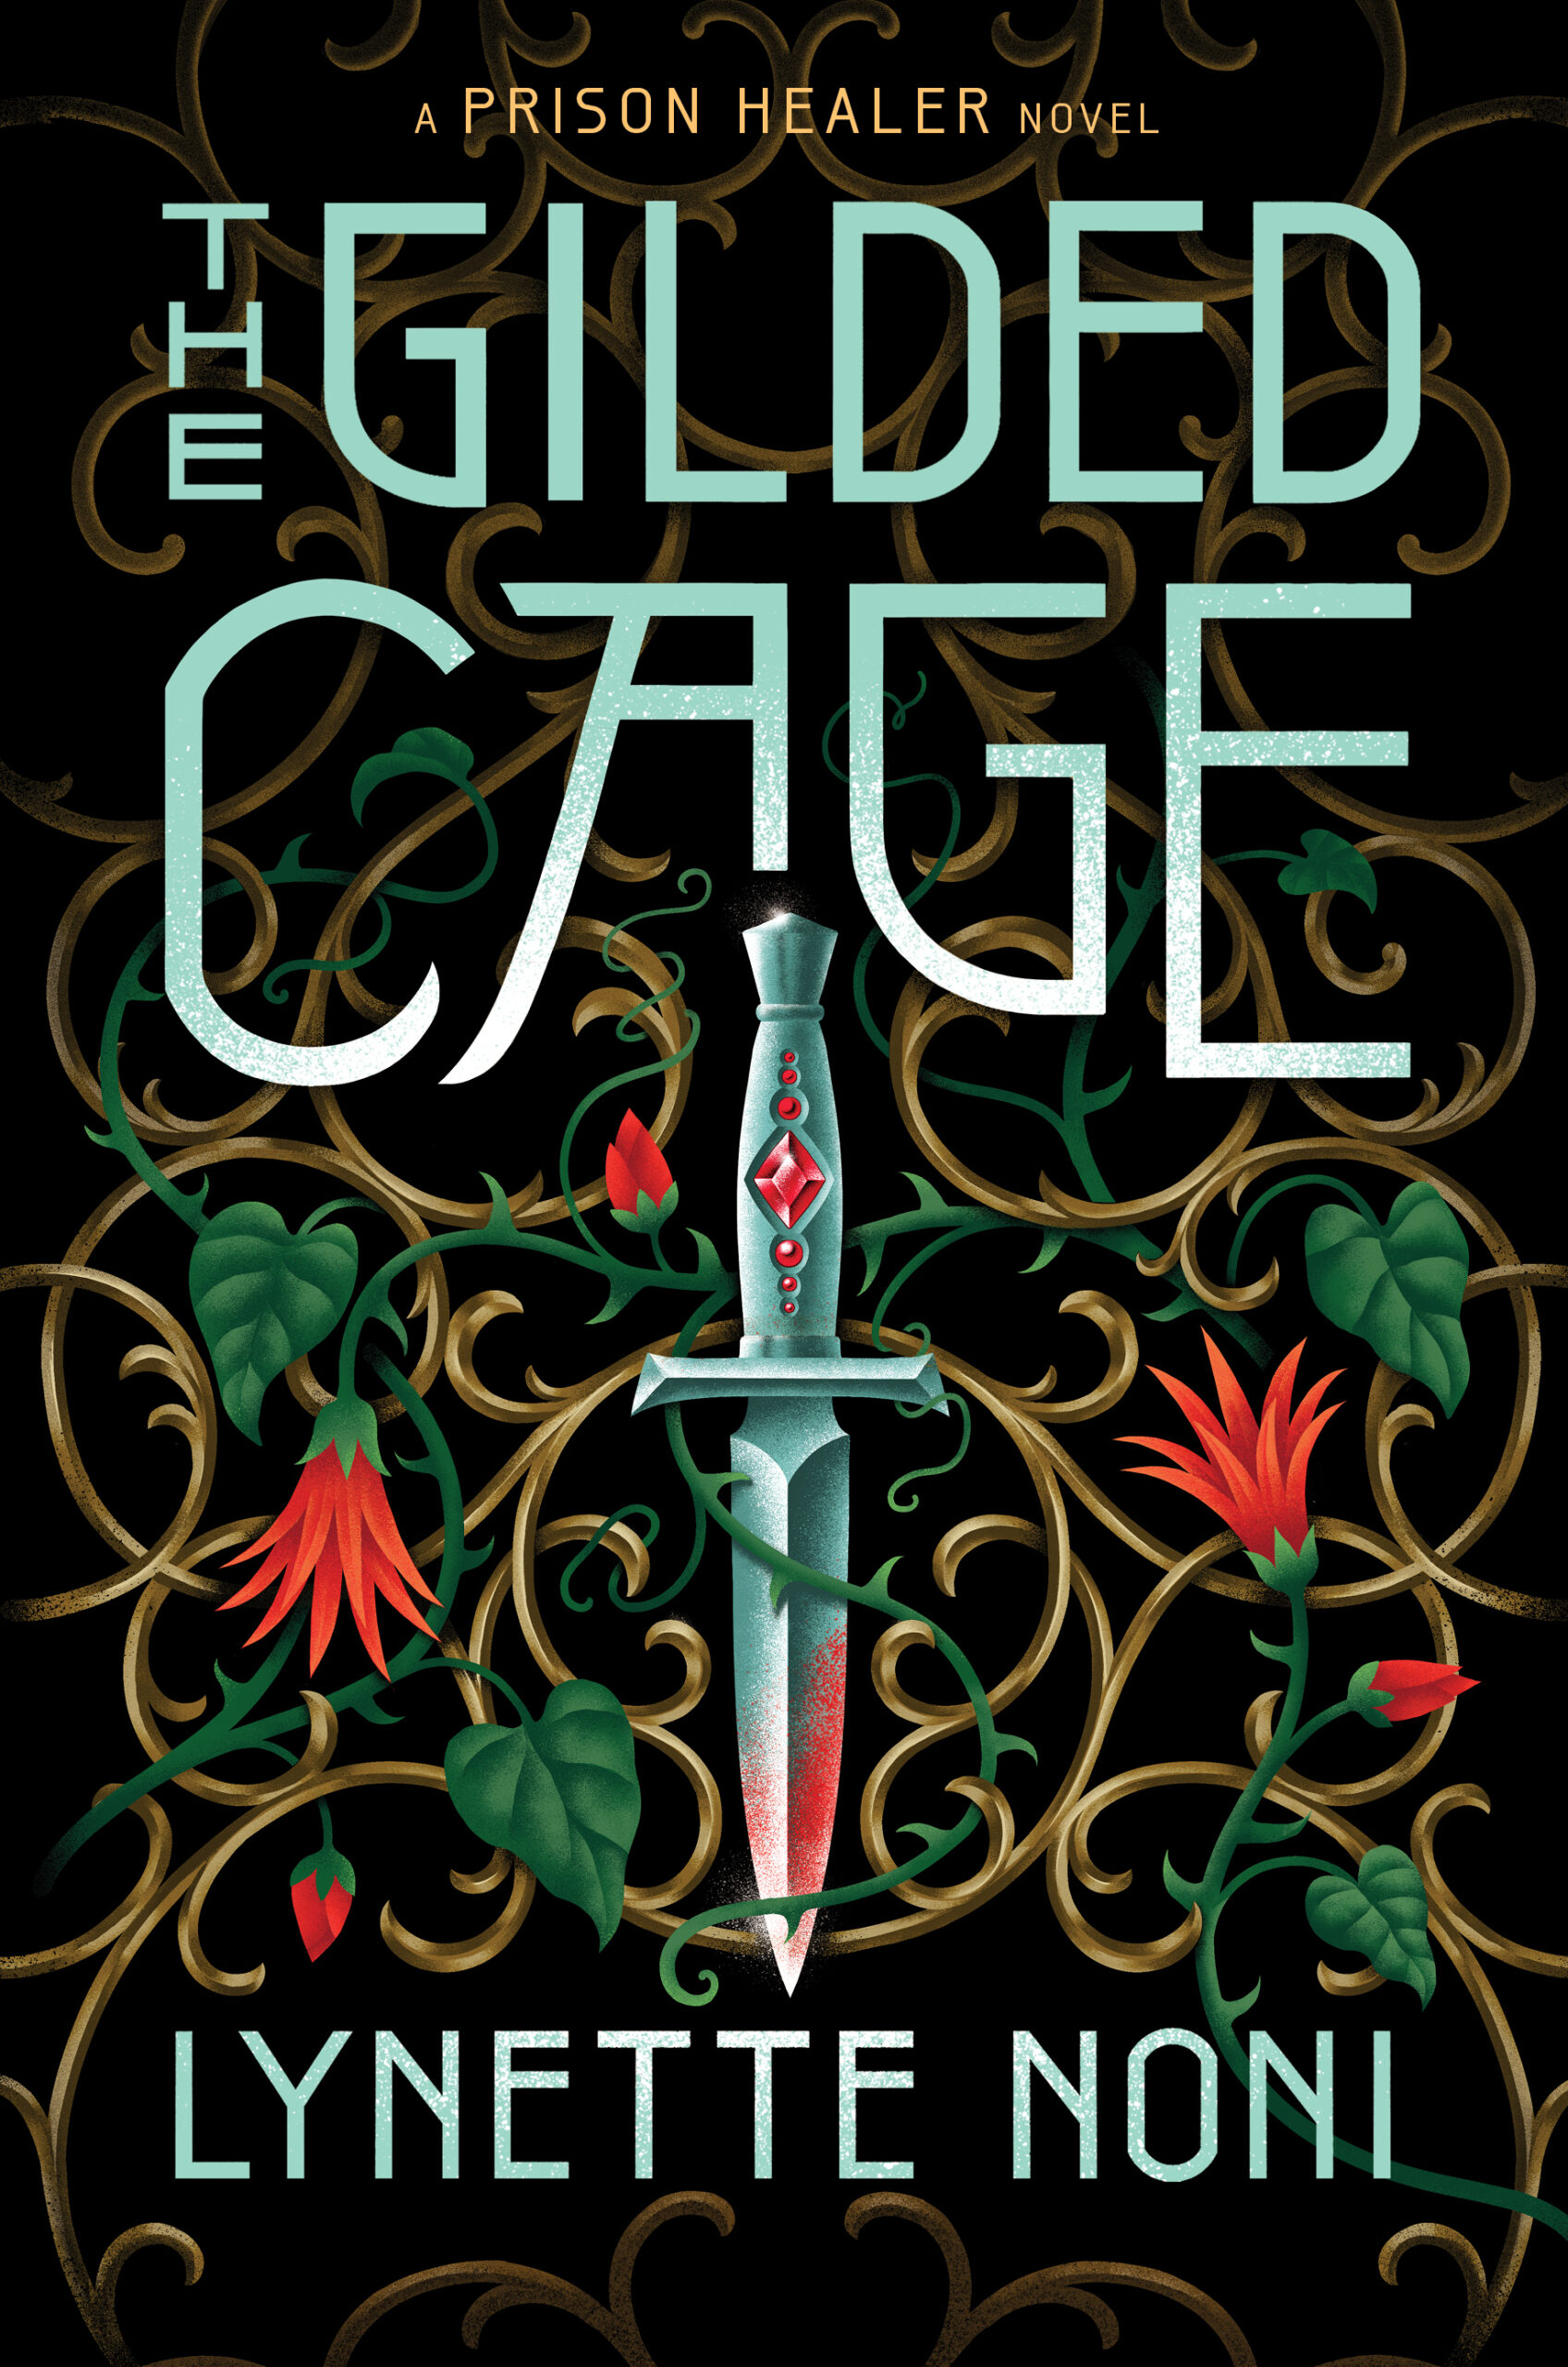 The Gilded Cage by Lynette Noni